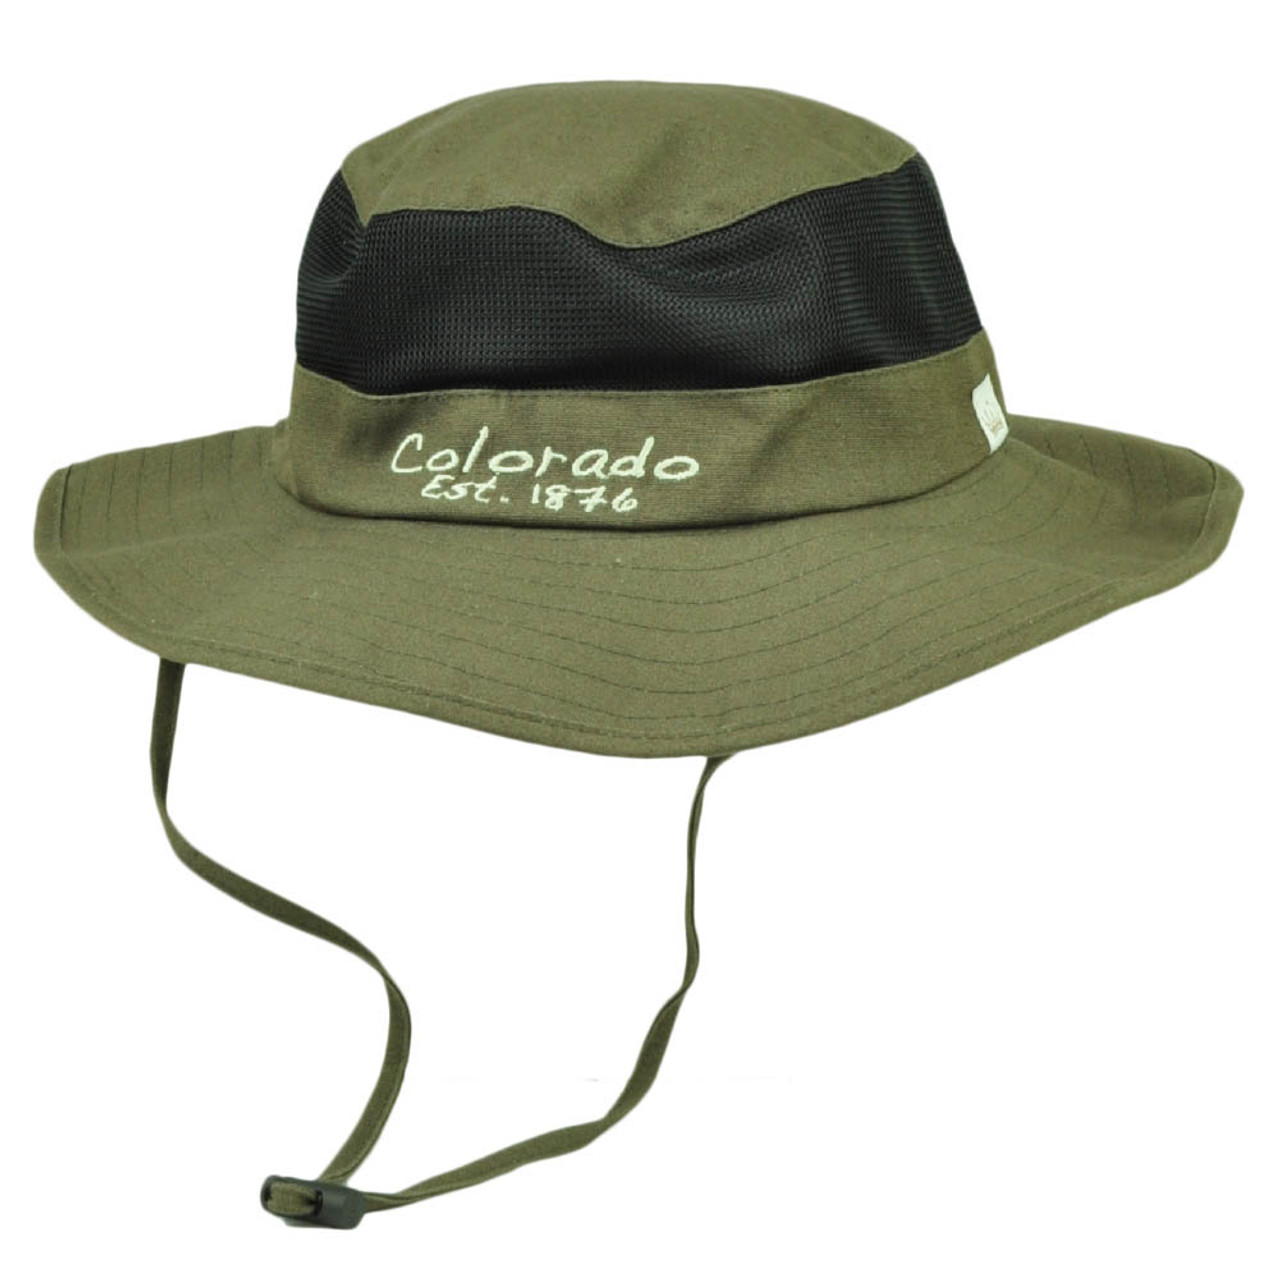 b4c34a8e6c0f60 Colorado State Brown Booney Sun bucket Hat Chin Strap Mesh Band Outdoors USA  - Cap Store Online.com